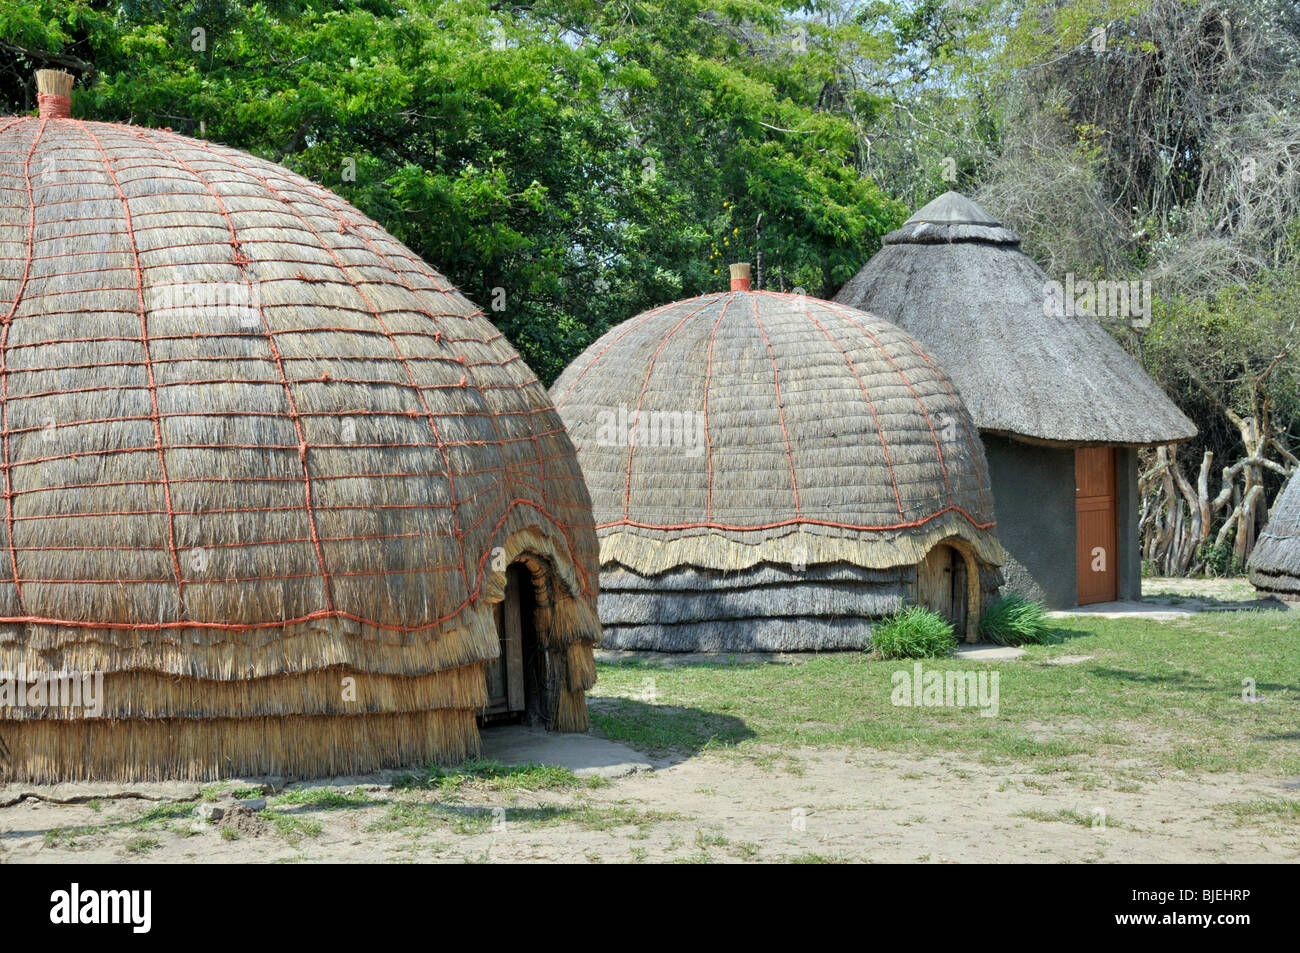 Huts at an openair museum, Kuhla, Republic of South Africa - Stock Image